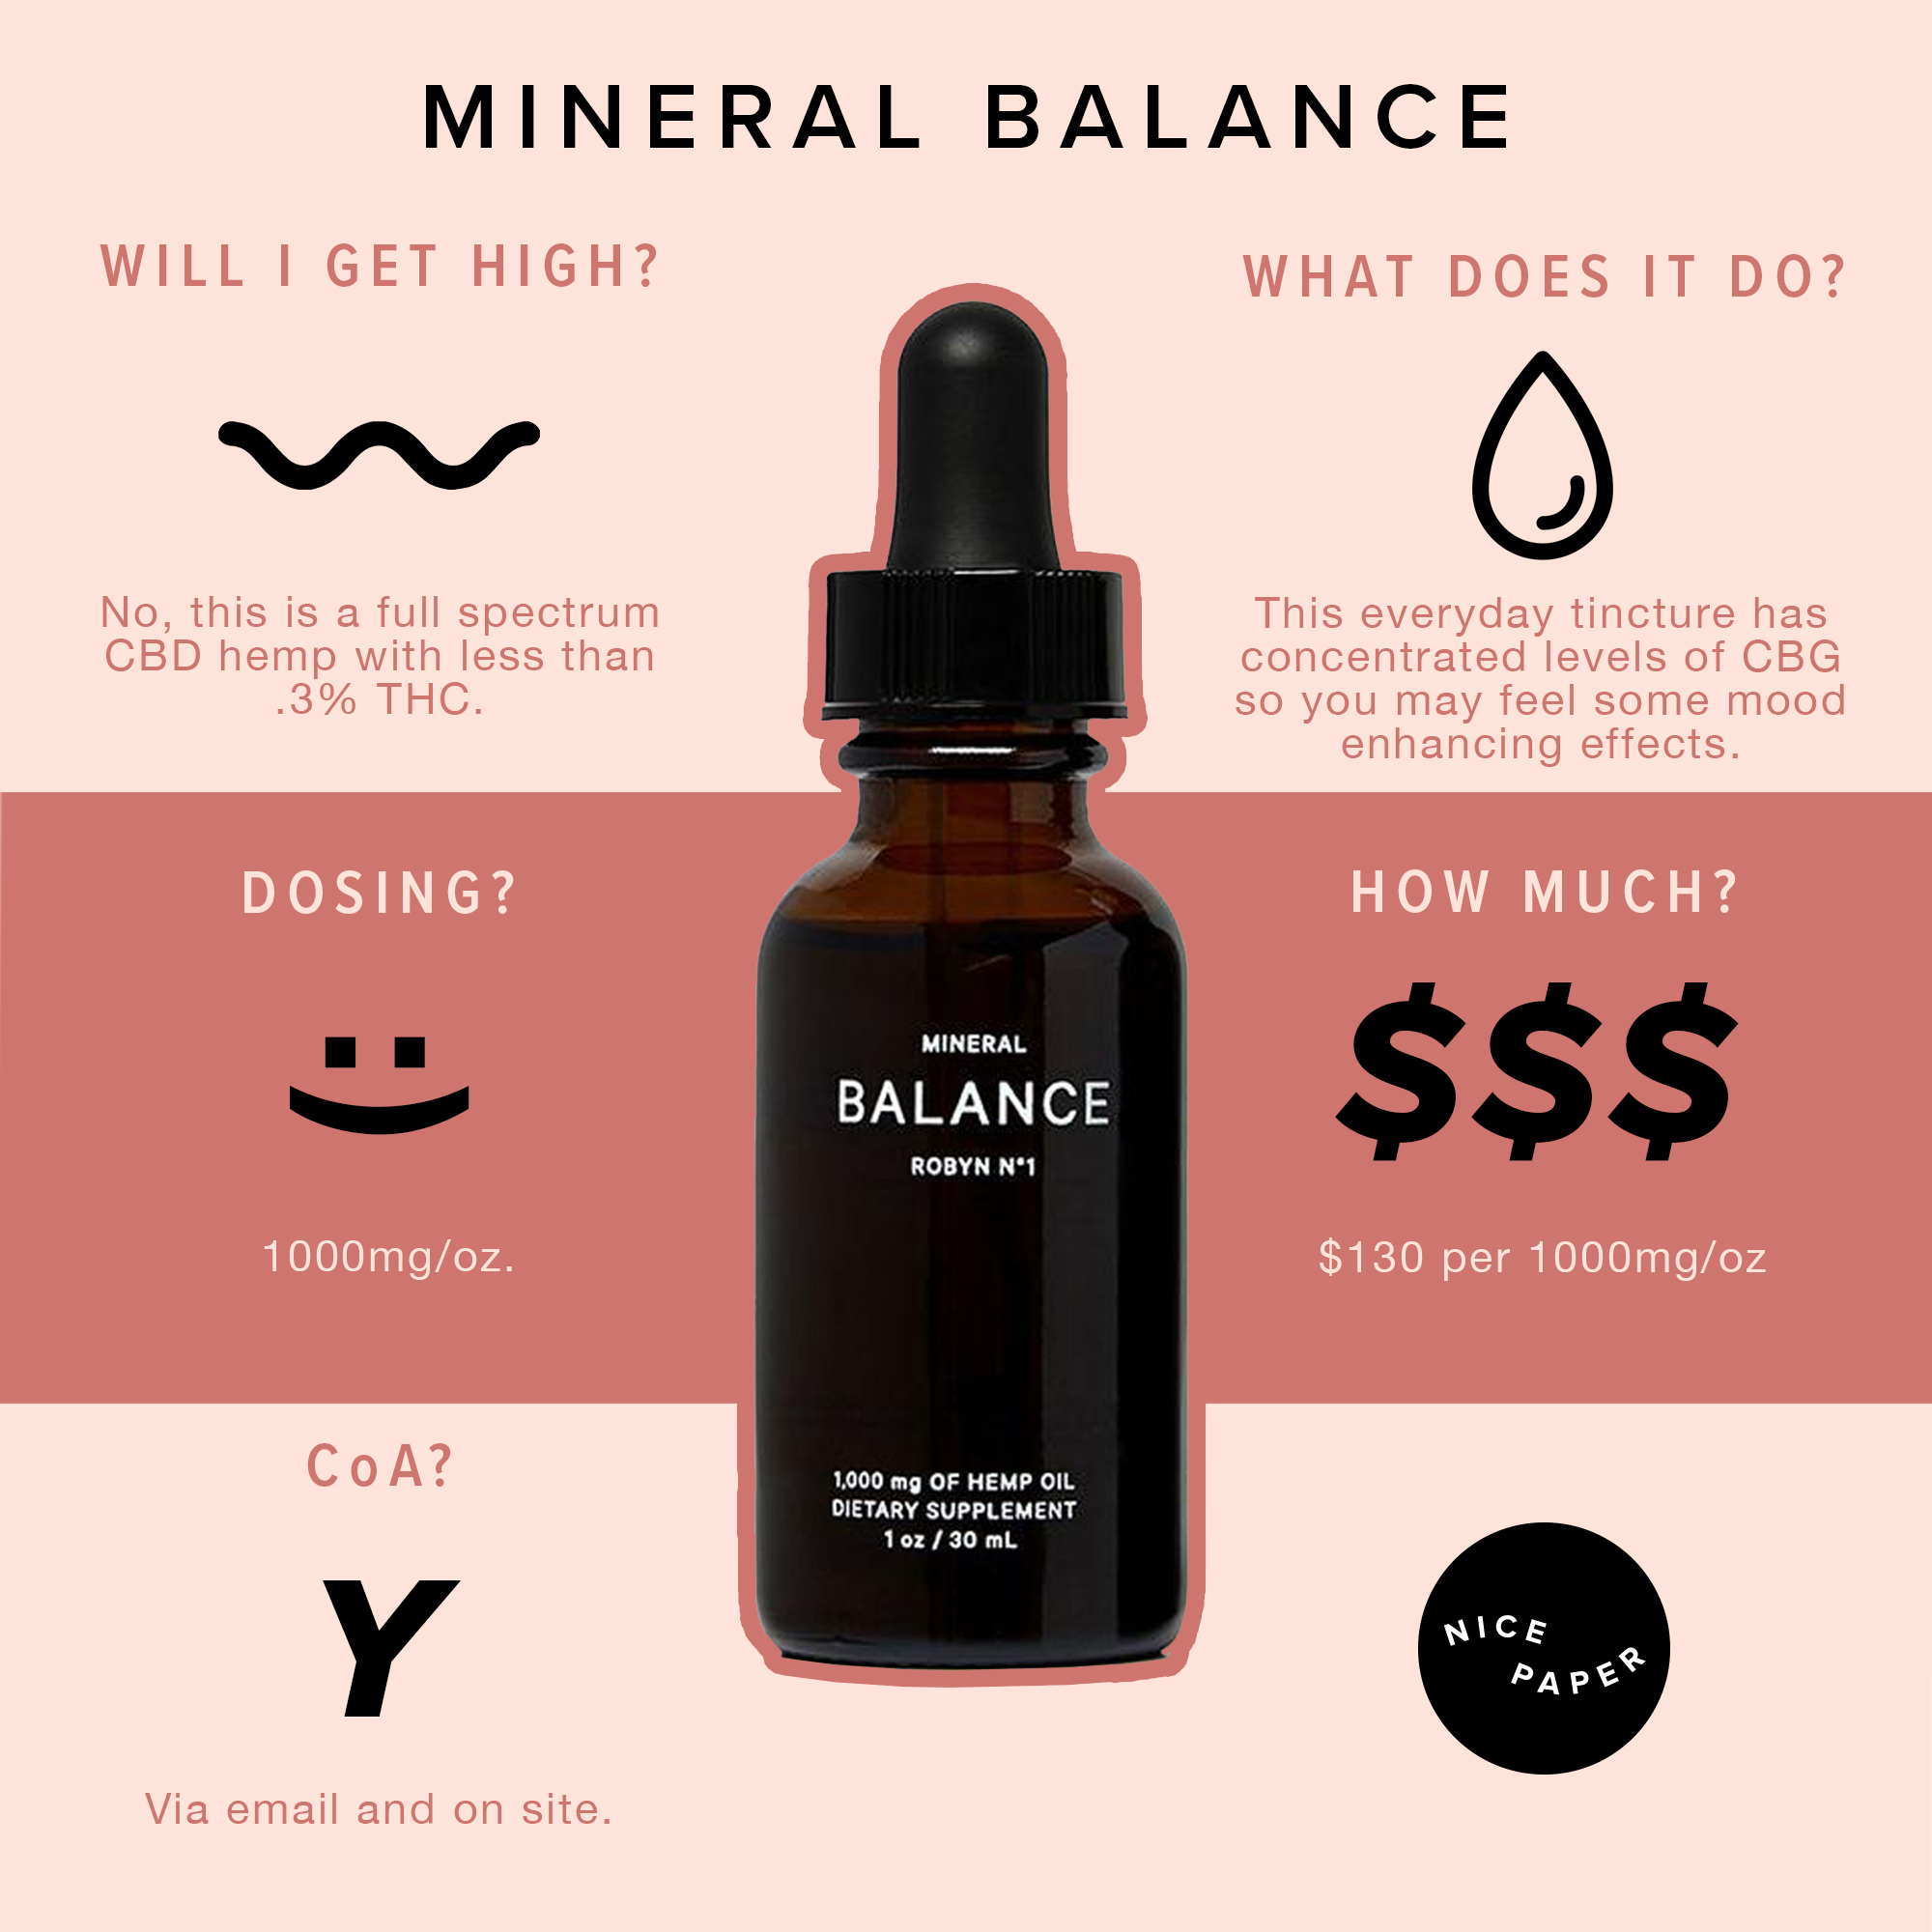 Mineral Balance - A cannabinoid-dense formula with concentrated amounts of CBD and CBG, BALANCE is elevated by terpenes known for improving mood and relieving stress. Recommended dosage is between 4-16mg.